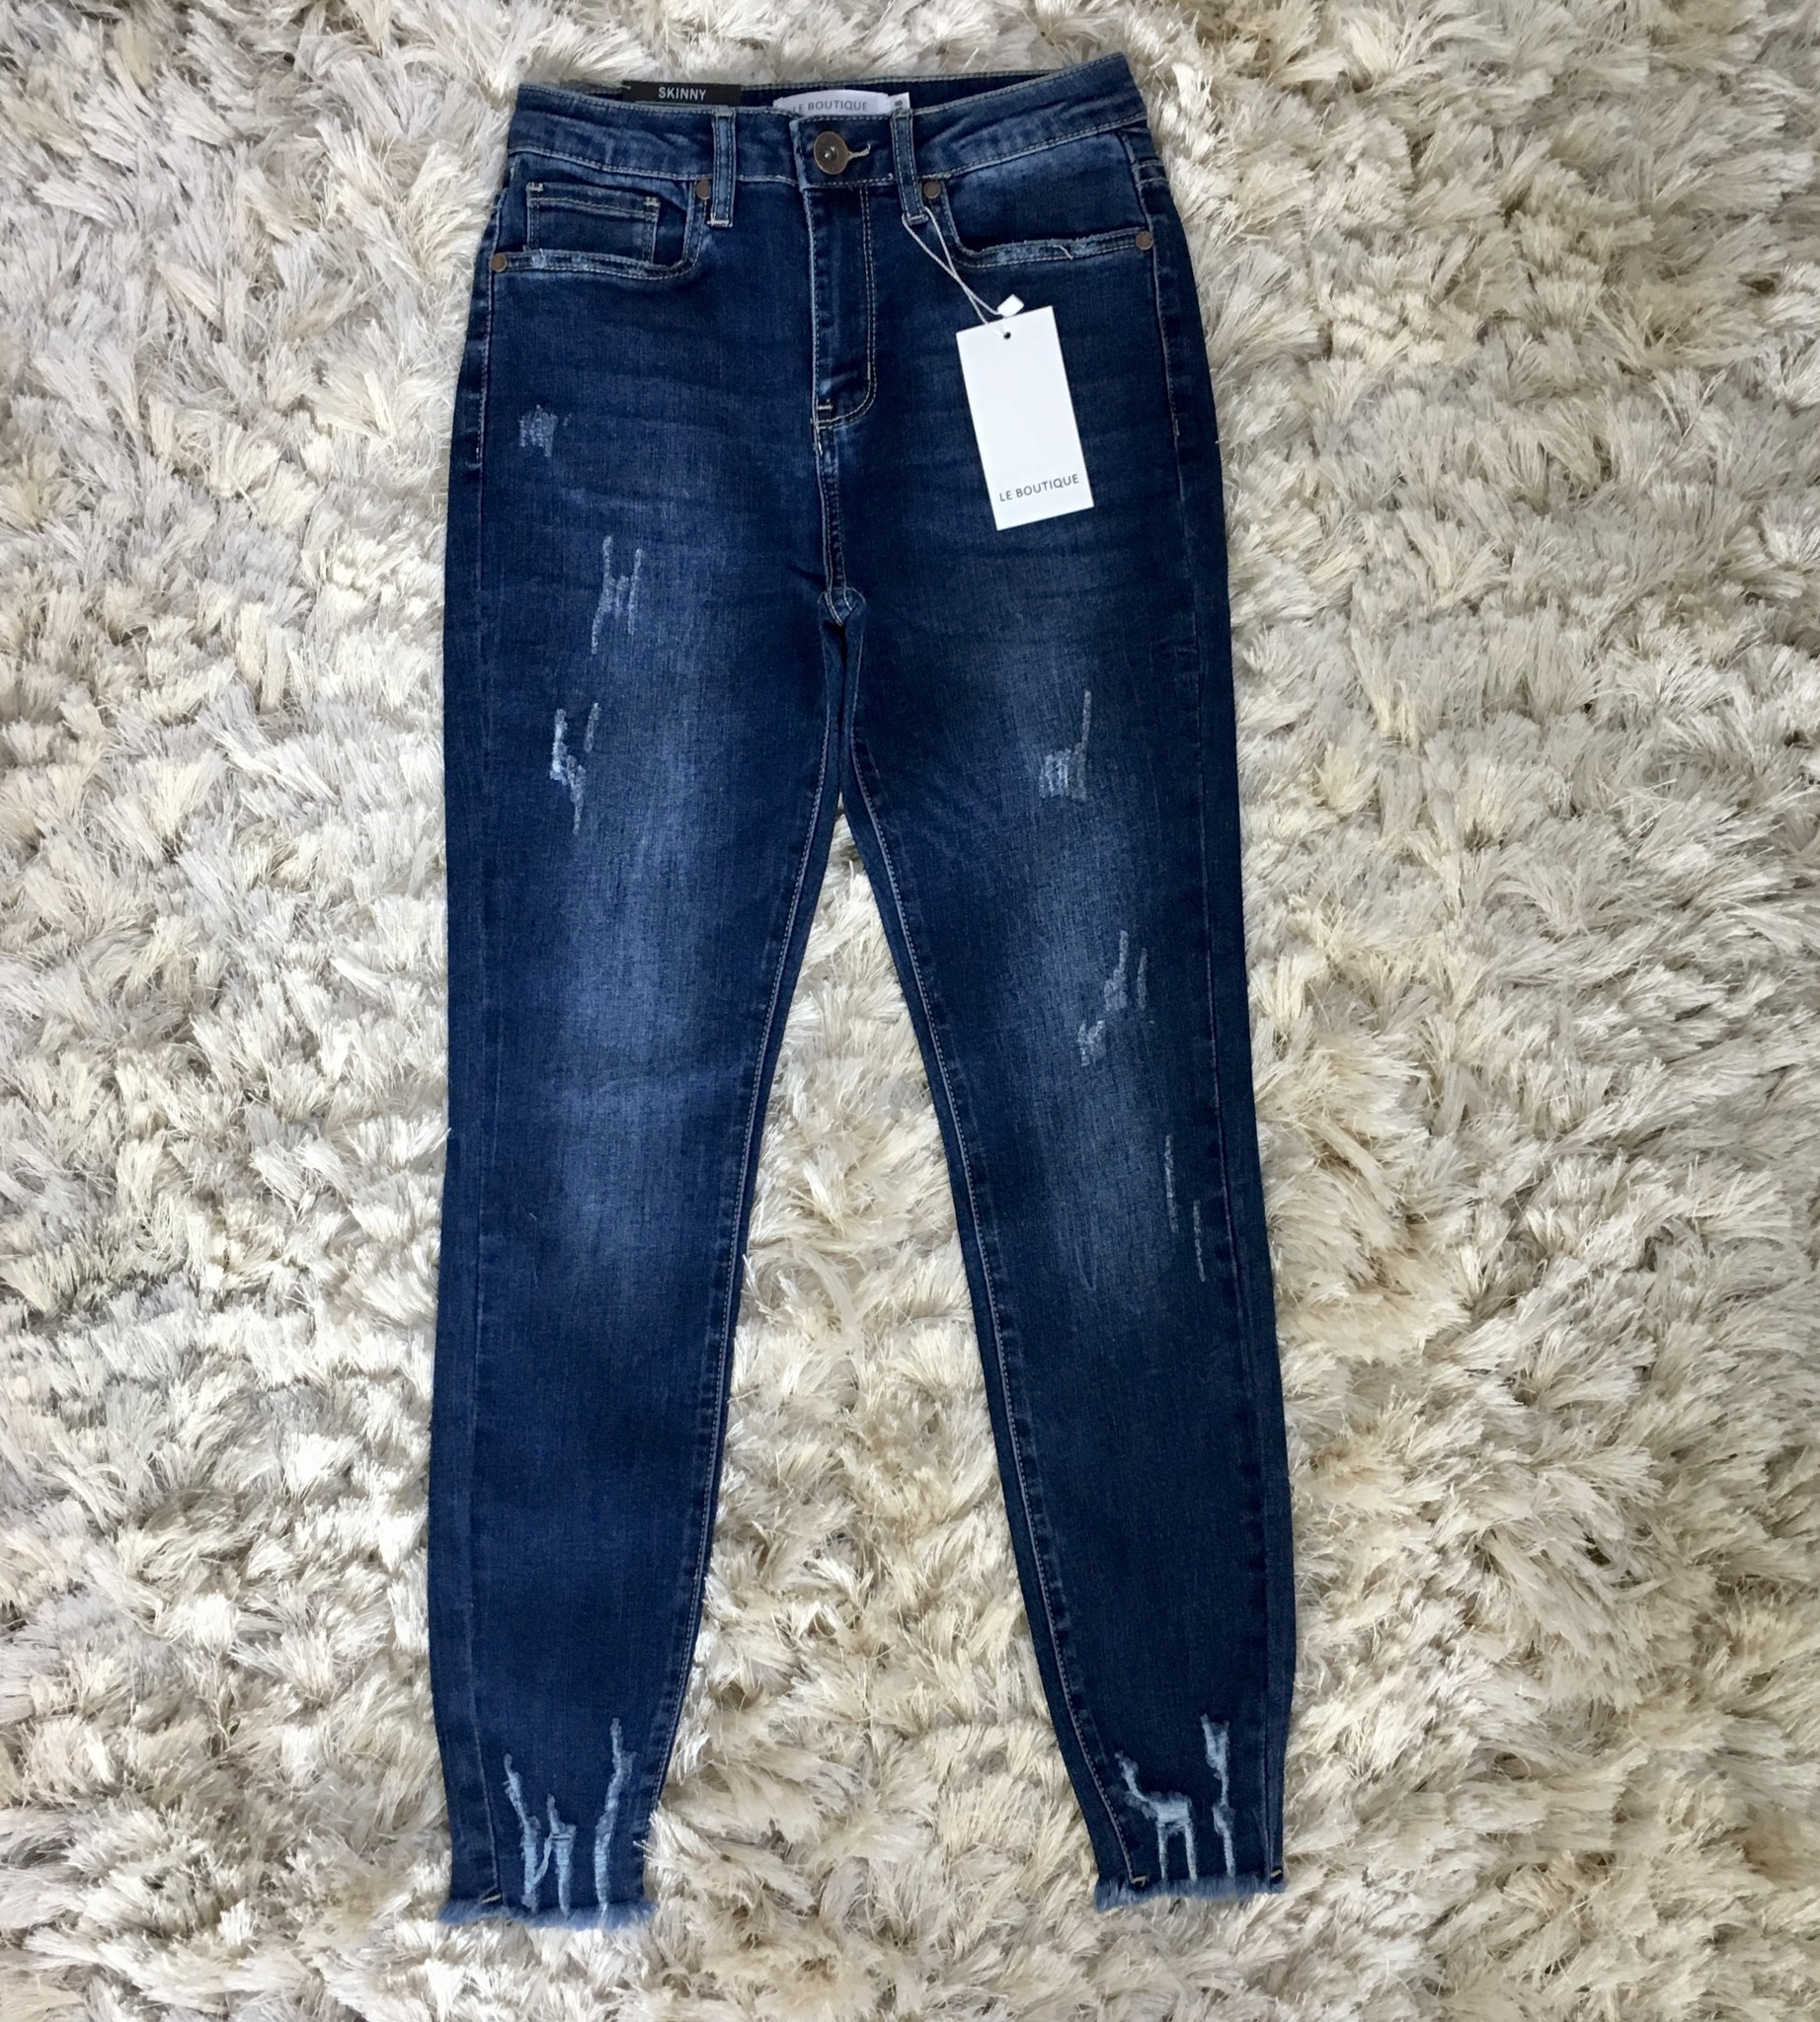 Ripped jeans sanremo blue